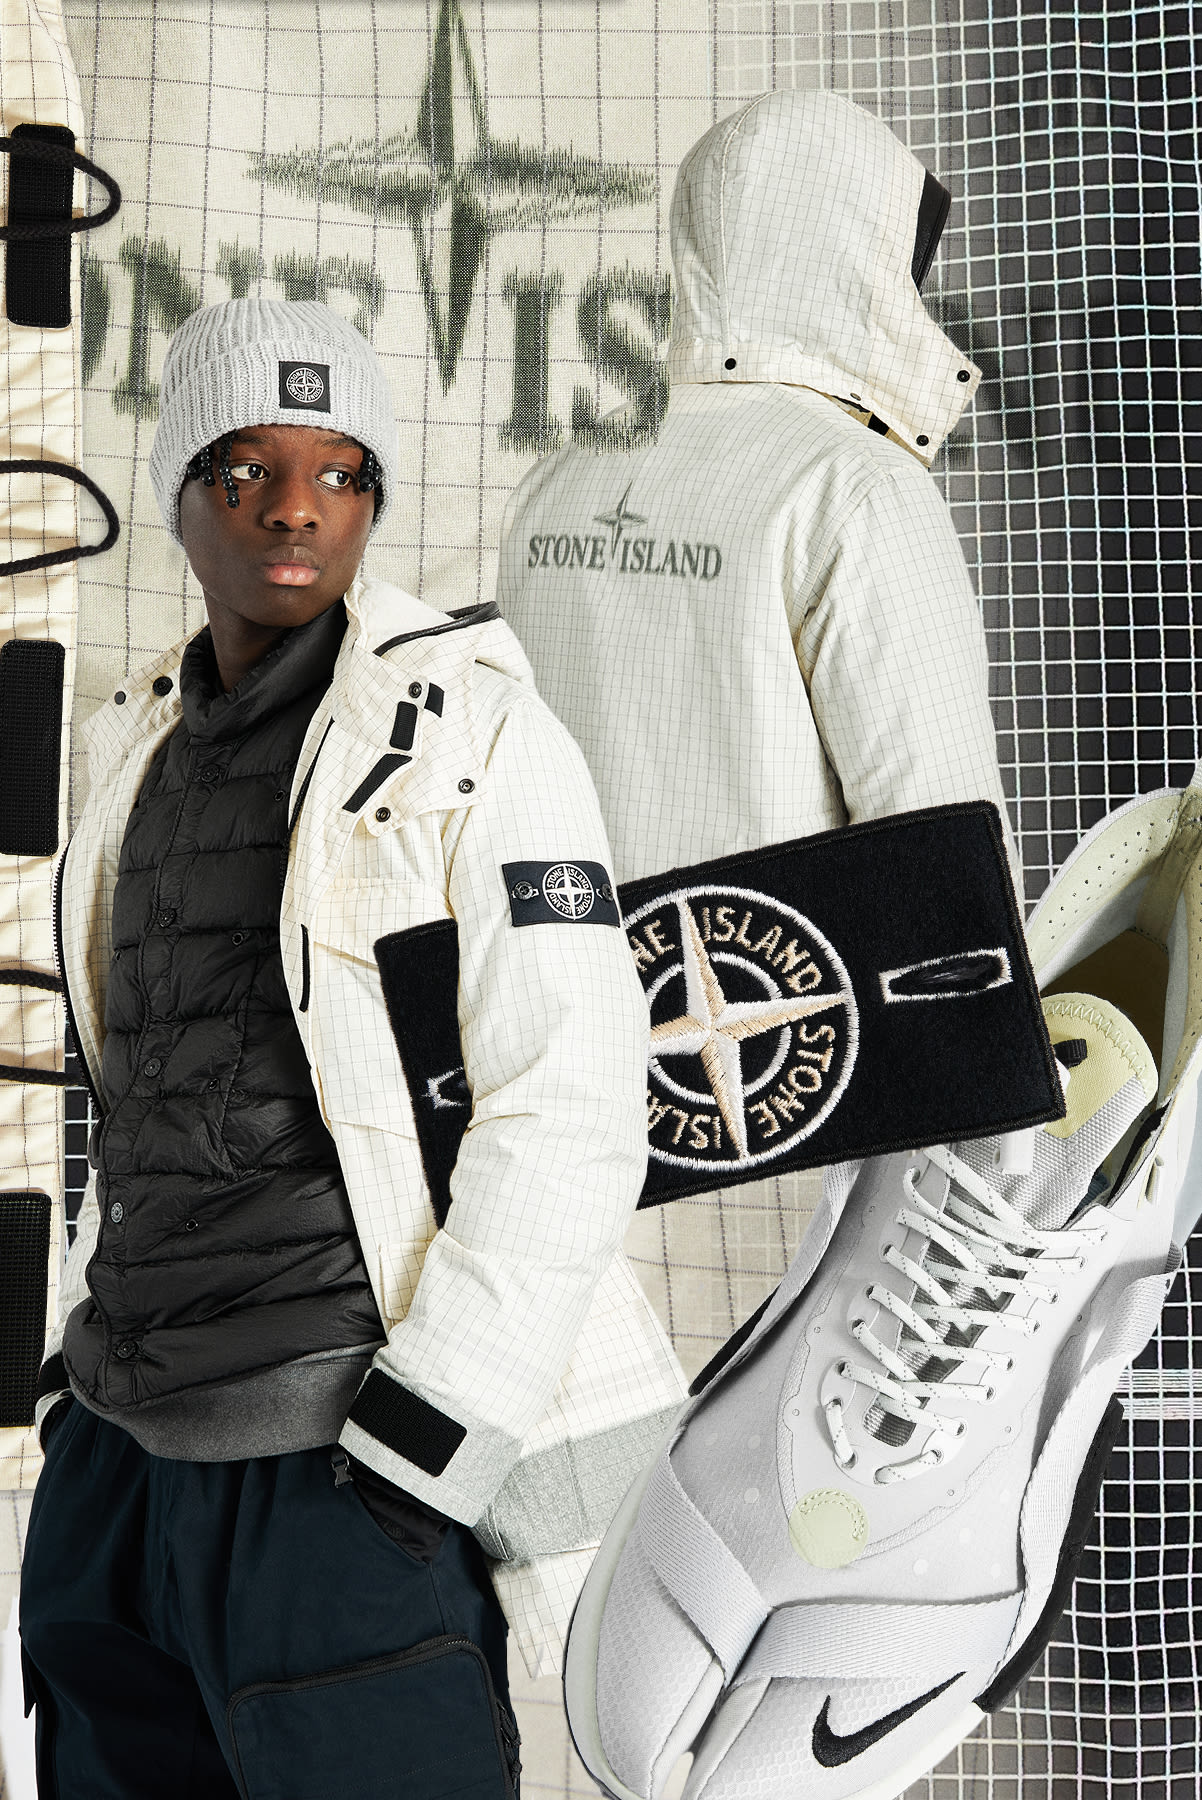 Curated 005 | Trek - Stone Island Reflective Jacket and Gilet Down Parka